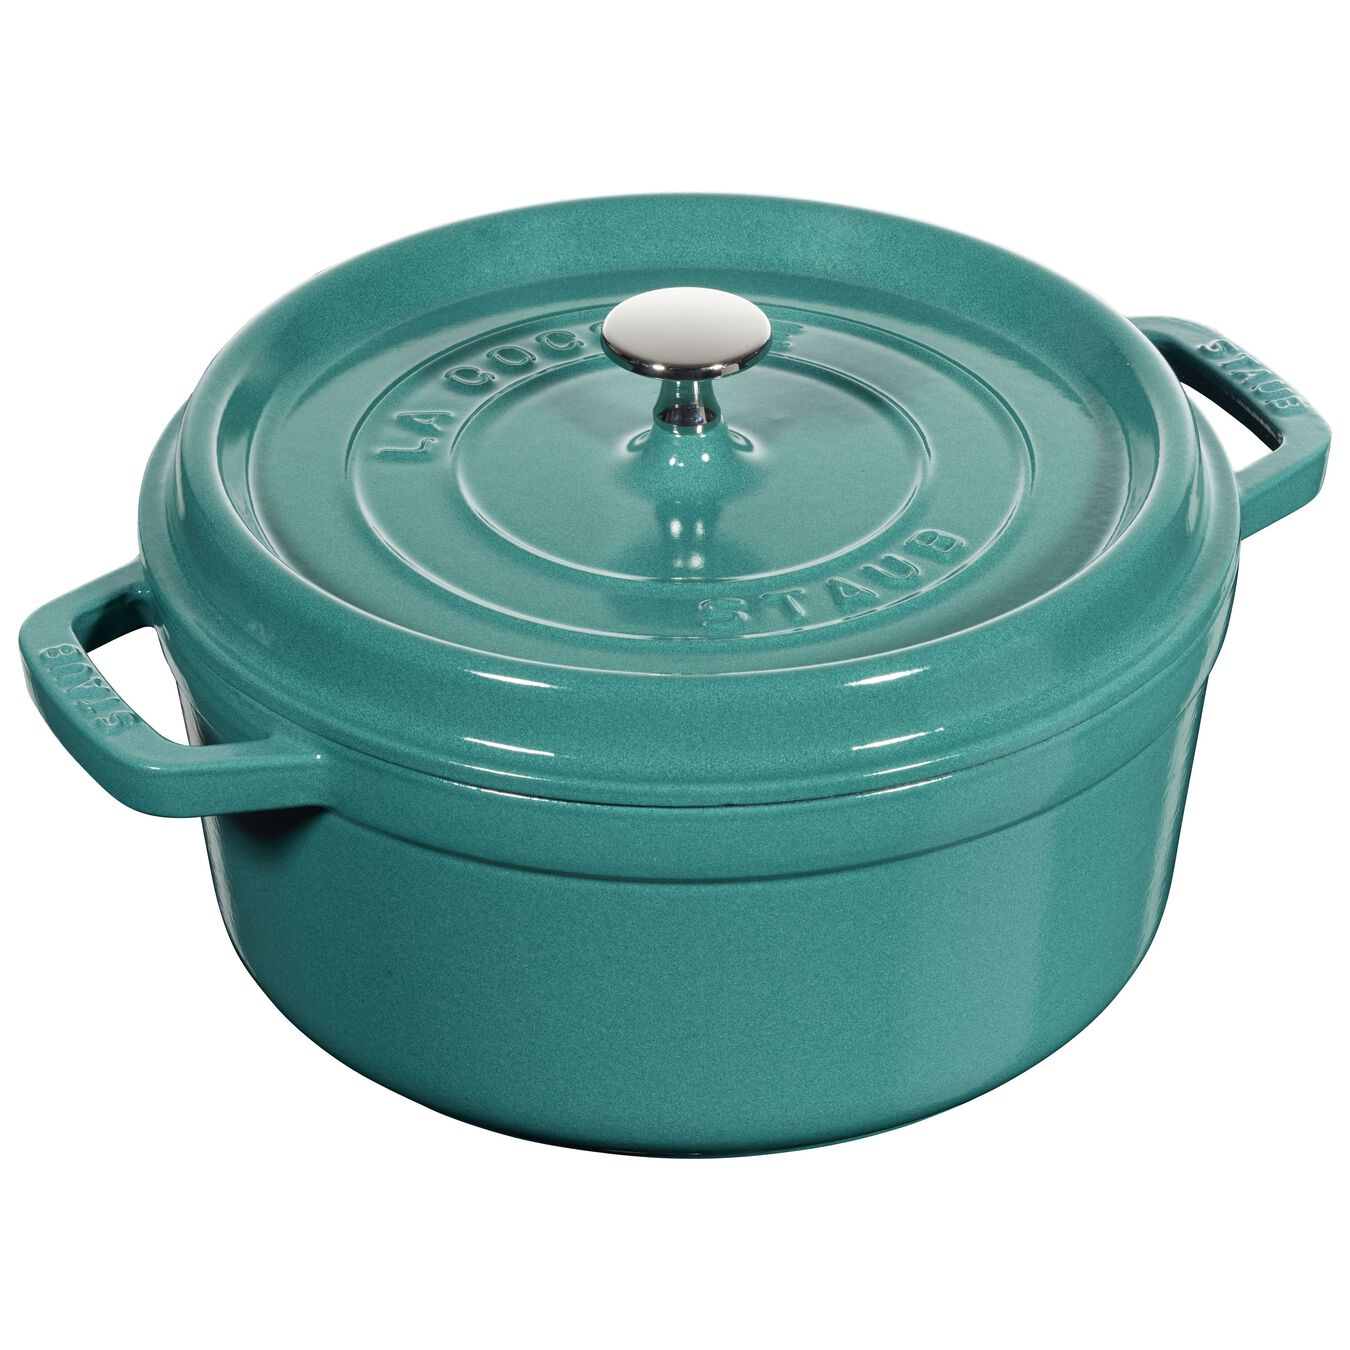 3.75 l Cast iron round Cocotte, Mint-Green,,large 1